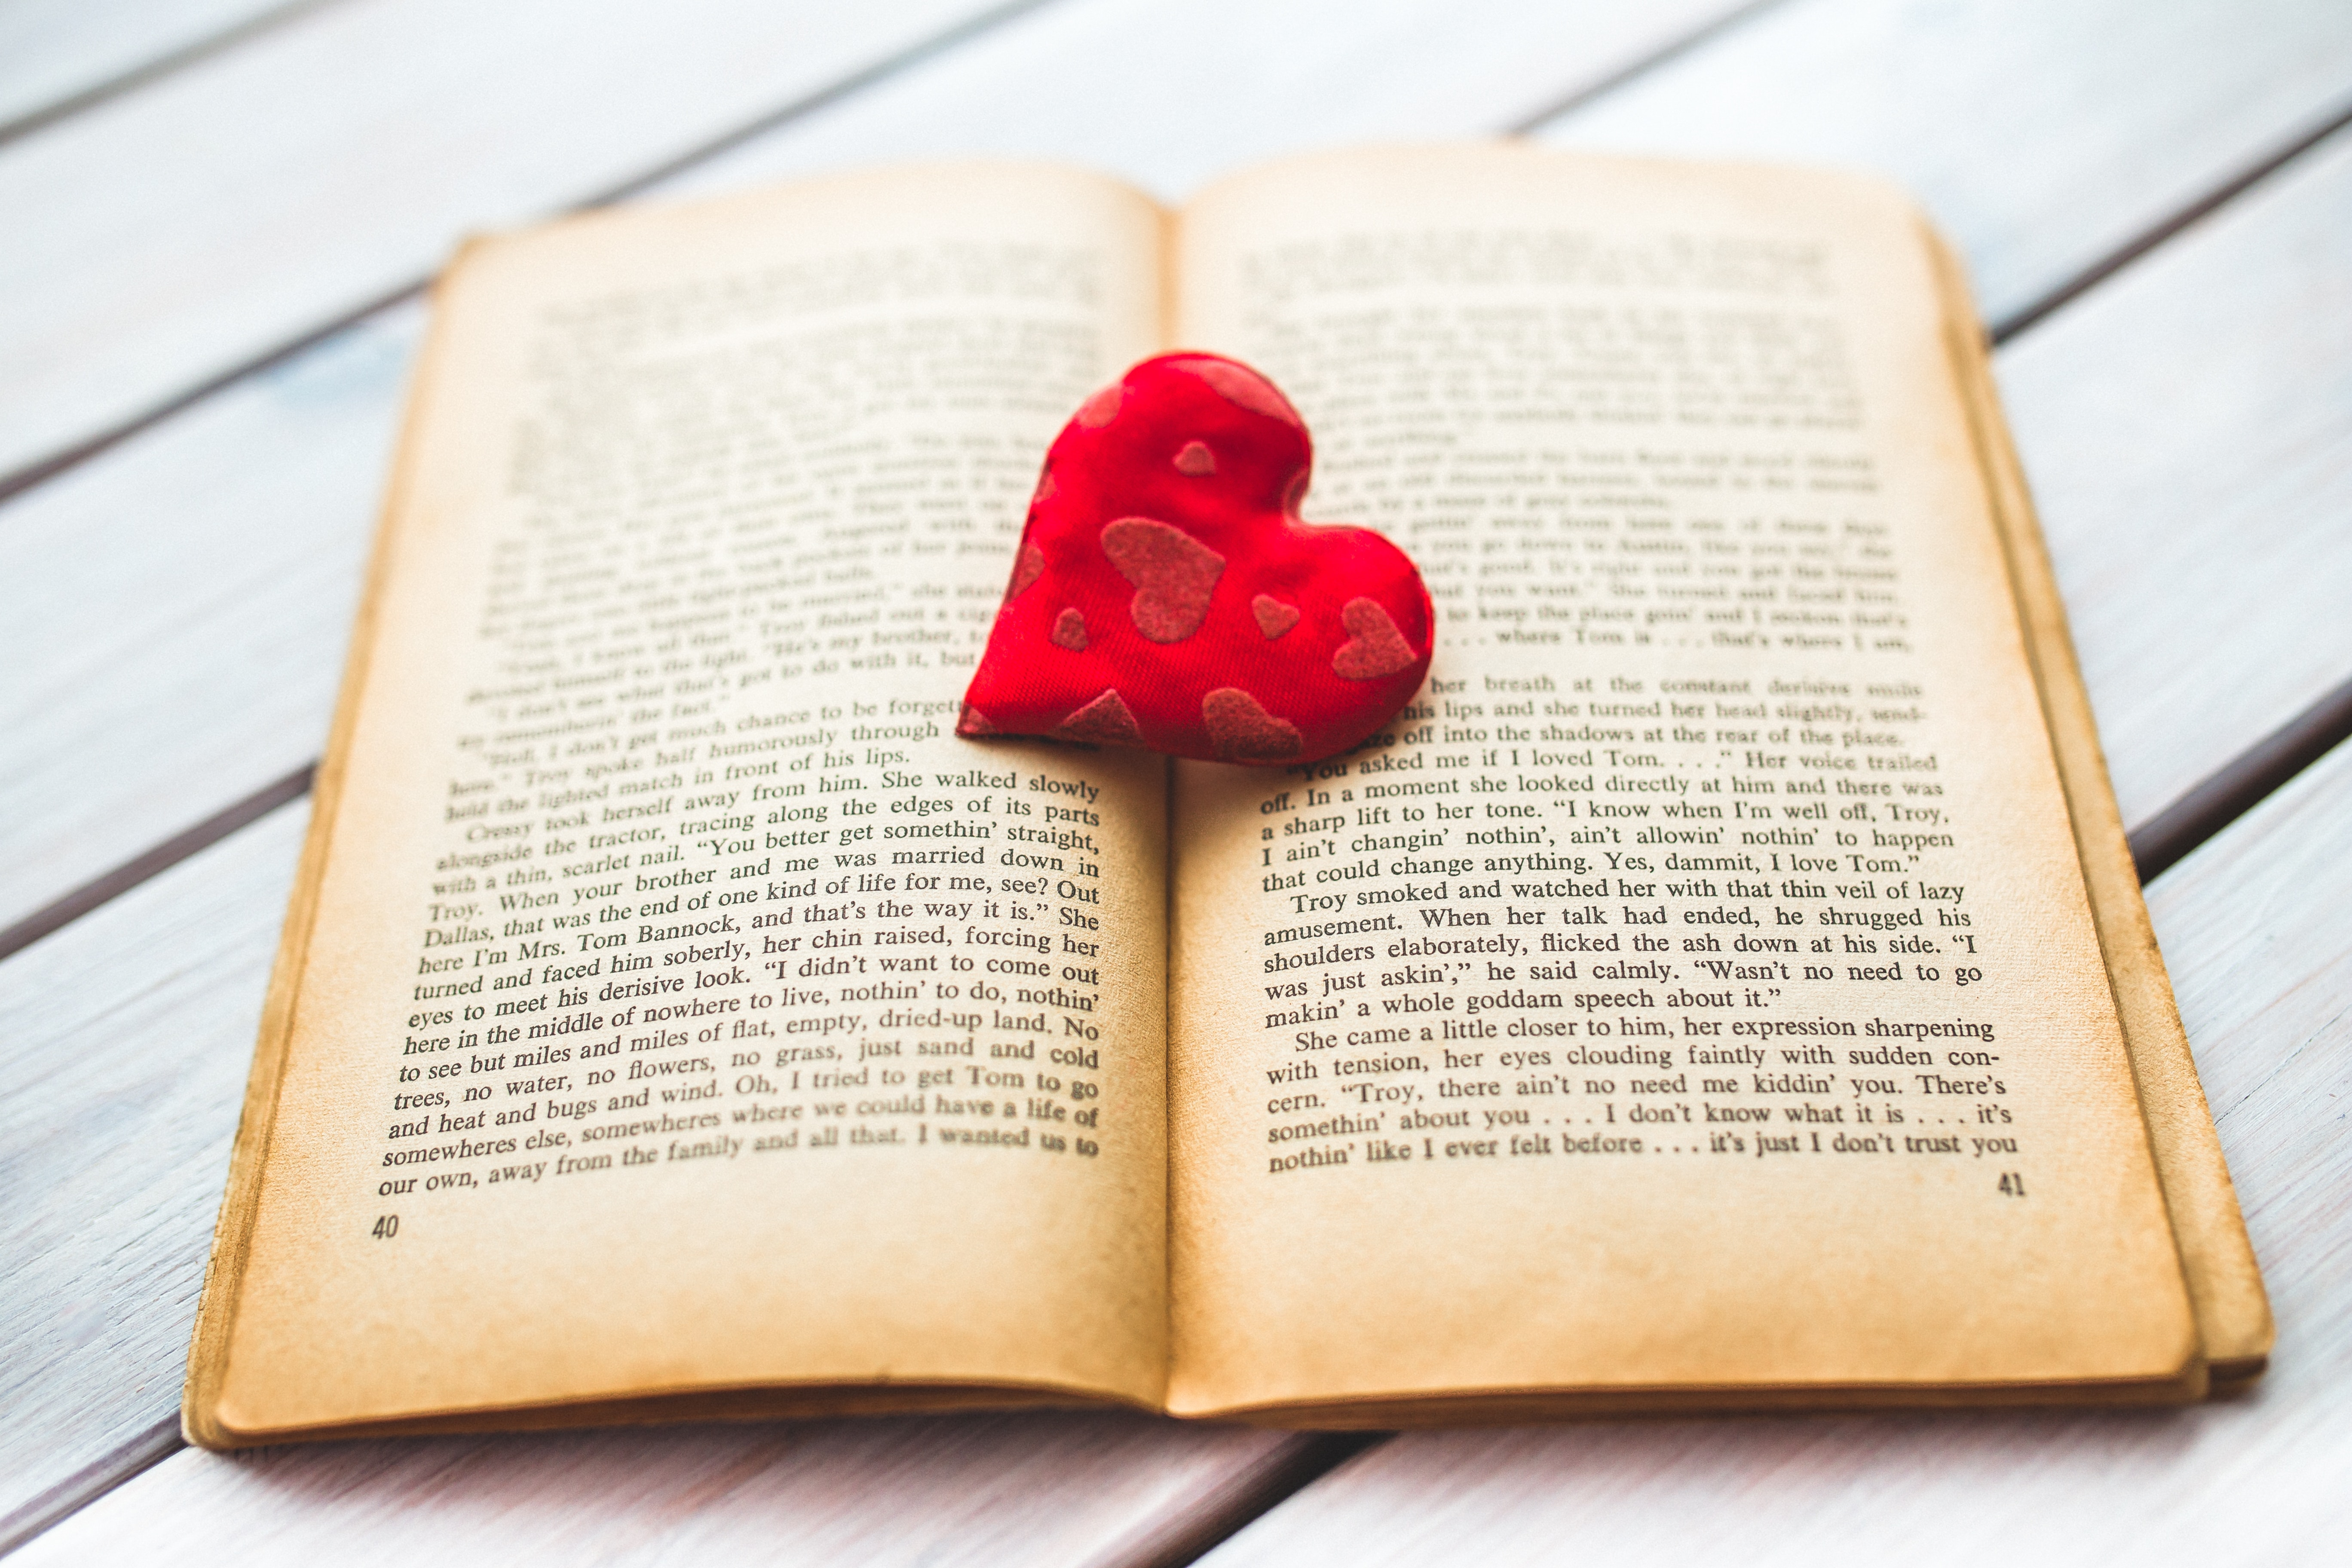 Red heart on a old opened book II, Book, Heart, Love, Nostalgic, HQ Photo